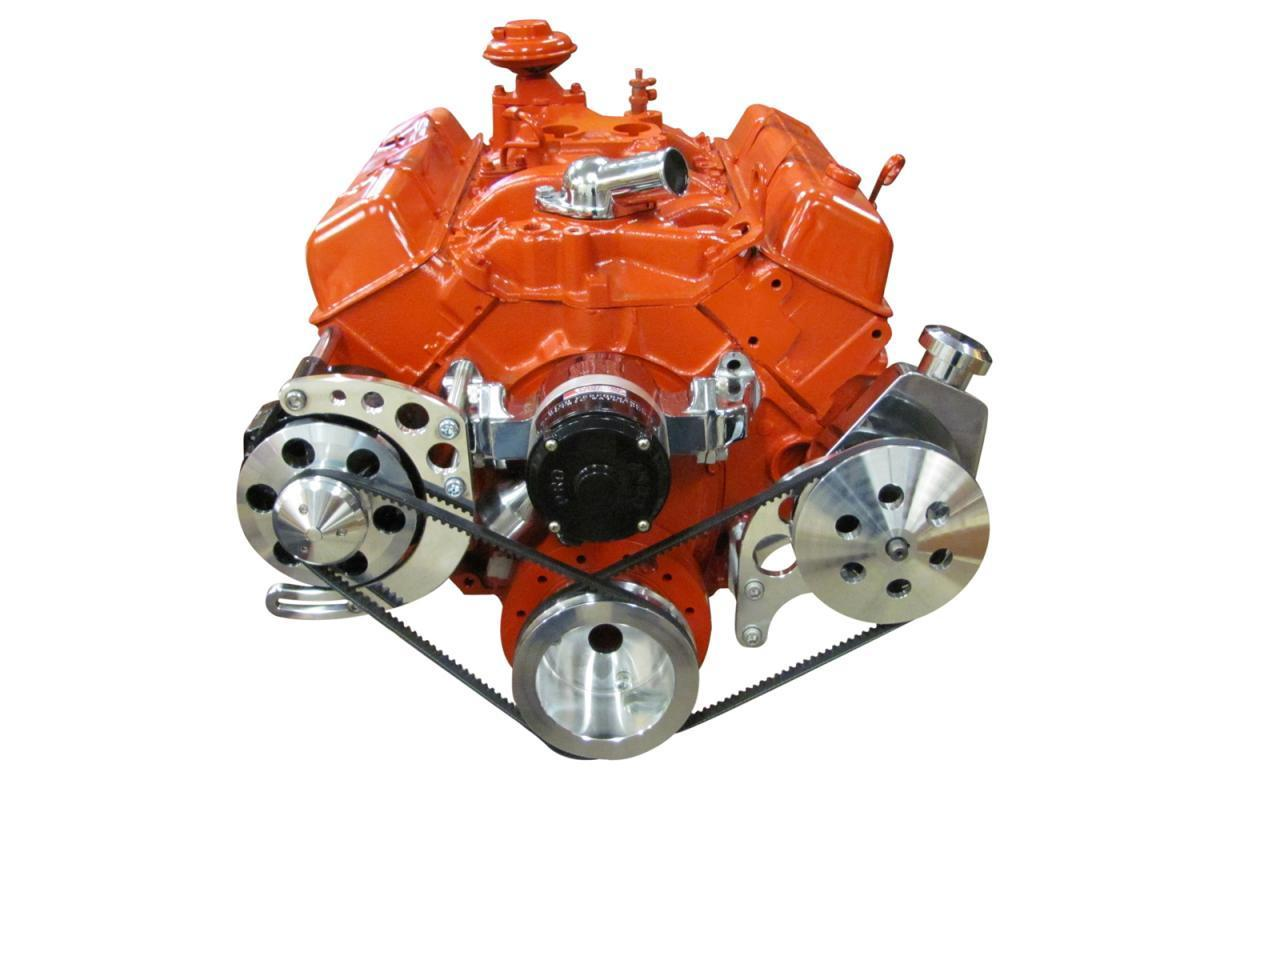 A Look At The Most Affordable Chevy Conversion Kits From Concept One also 76253 1985 Chevrolet Silverado Ck10 Custom Deluxescottsdale Very Good Condition besides V8 5 Speed S10 22301753 as well Auction Image Gallery further I 22770869 Industrial Injection  pound Kit For 2007 5 2012 Cummins 6 7l Racing Twins. on chevy 350 water pump